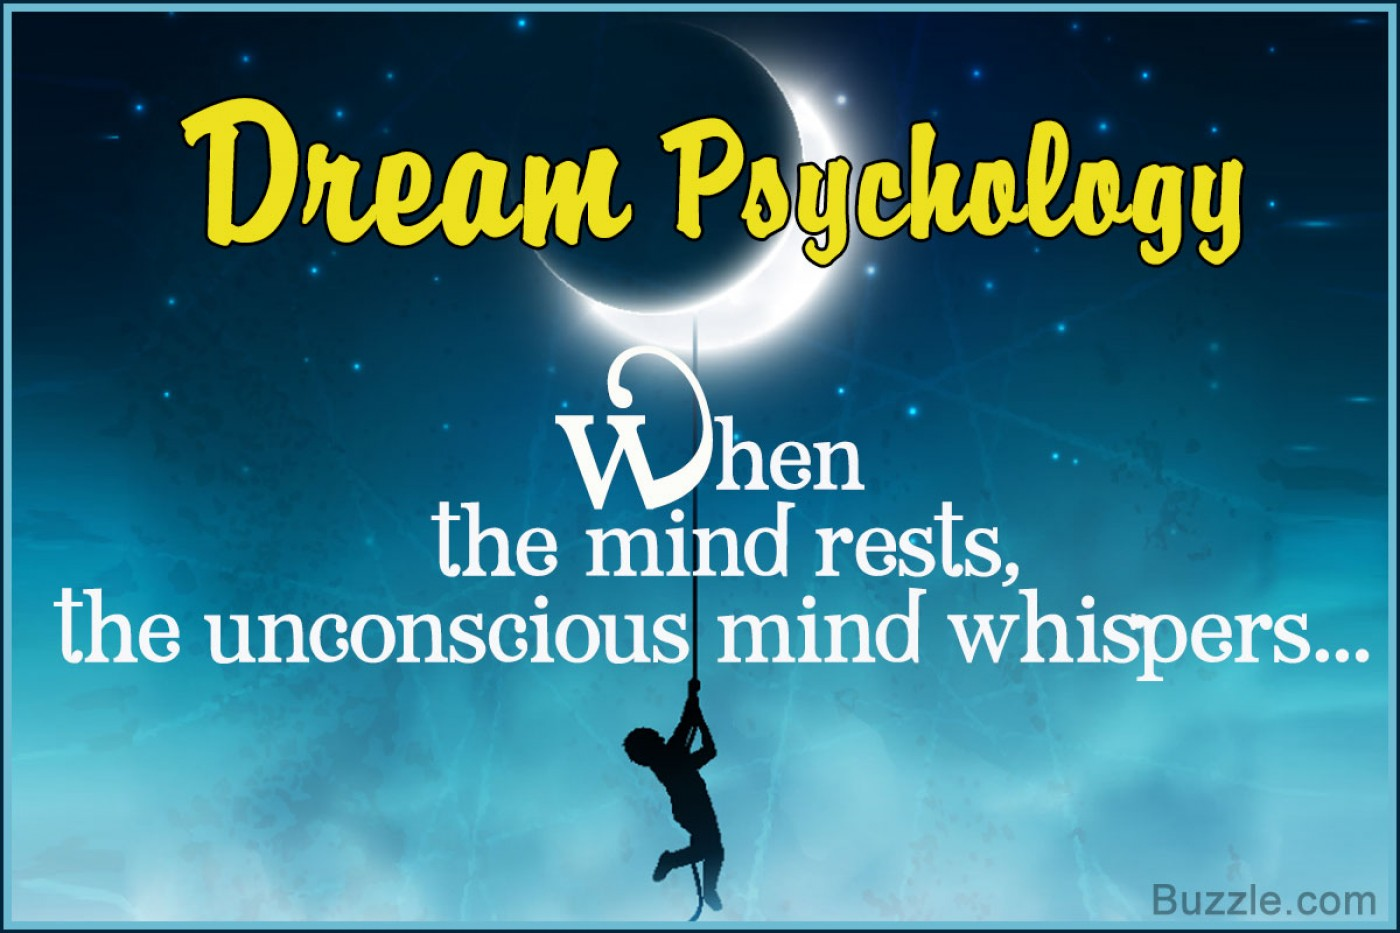 011 Psychology Of Dreams Research Paper Singular On Articles News 1400